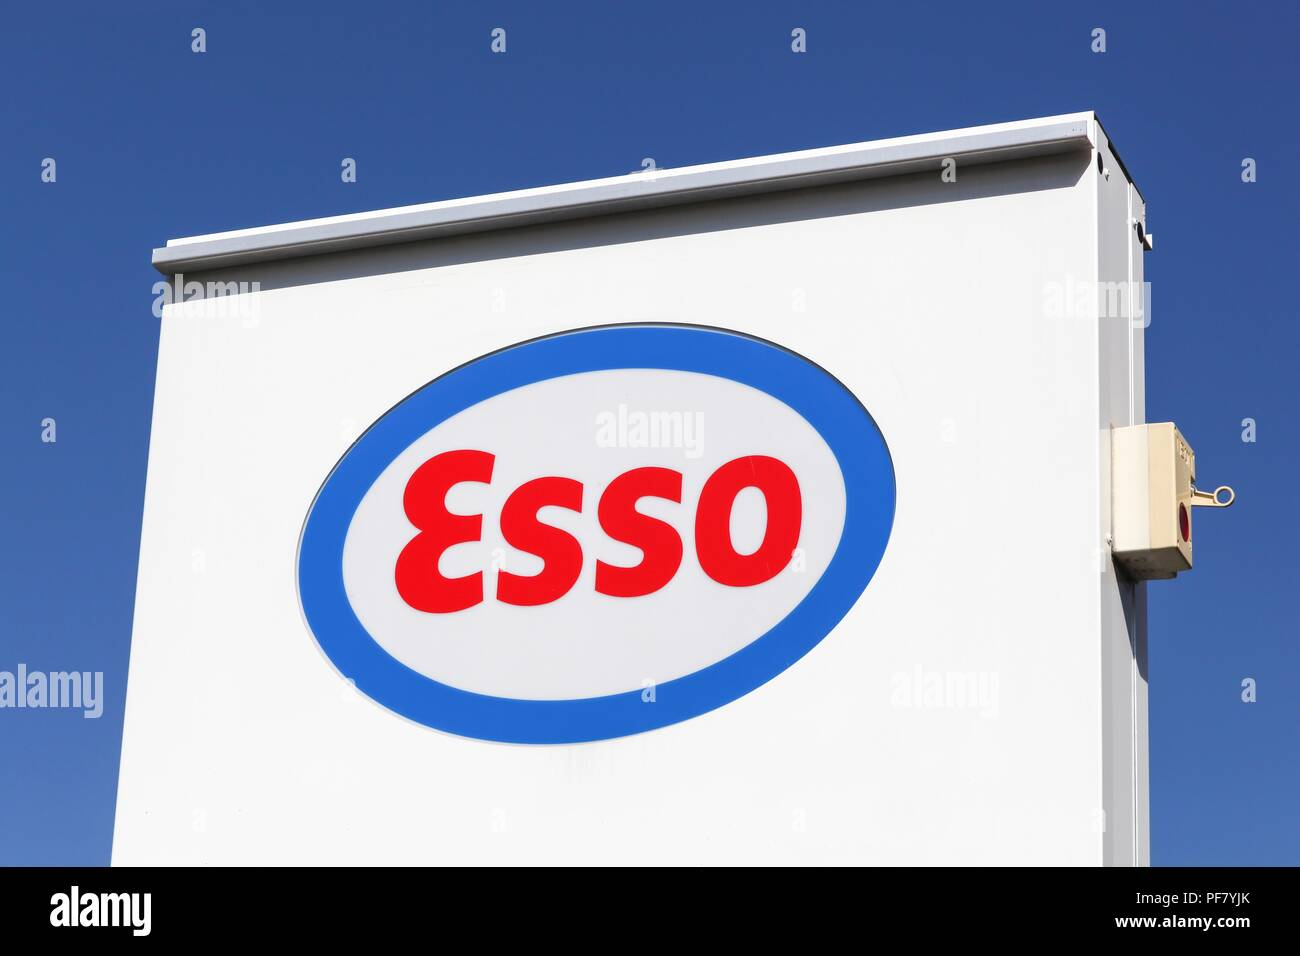 Saint Laurent, France - May 24, 2018: Esso logo on a panel. Esso is an international trade name for ExxonMobil - Stock Image